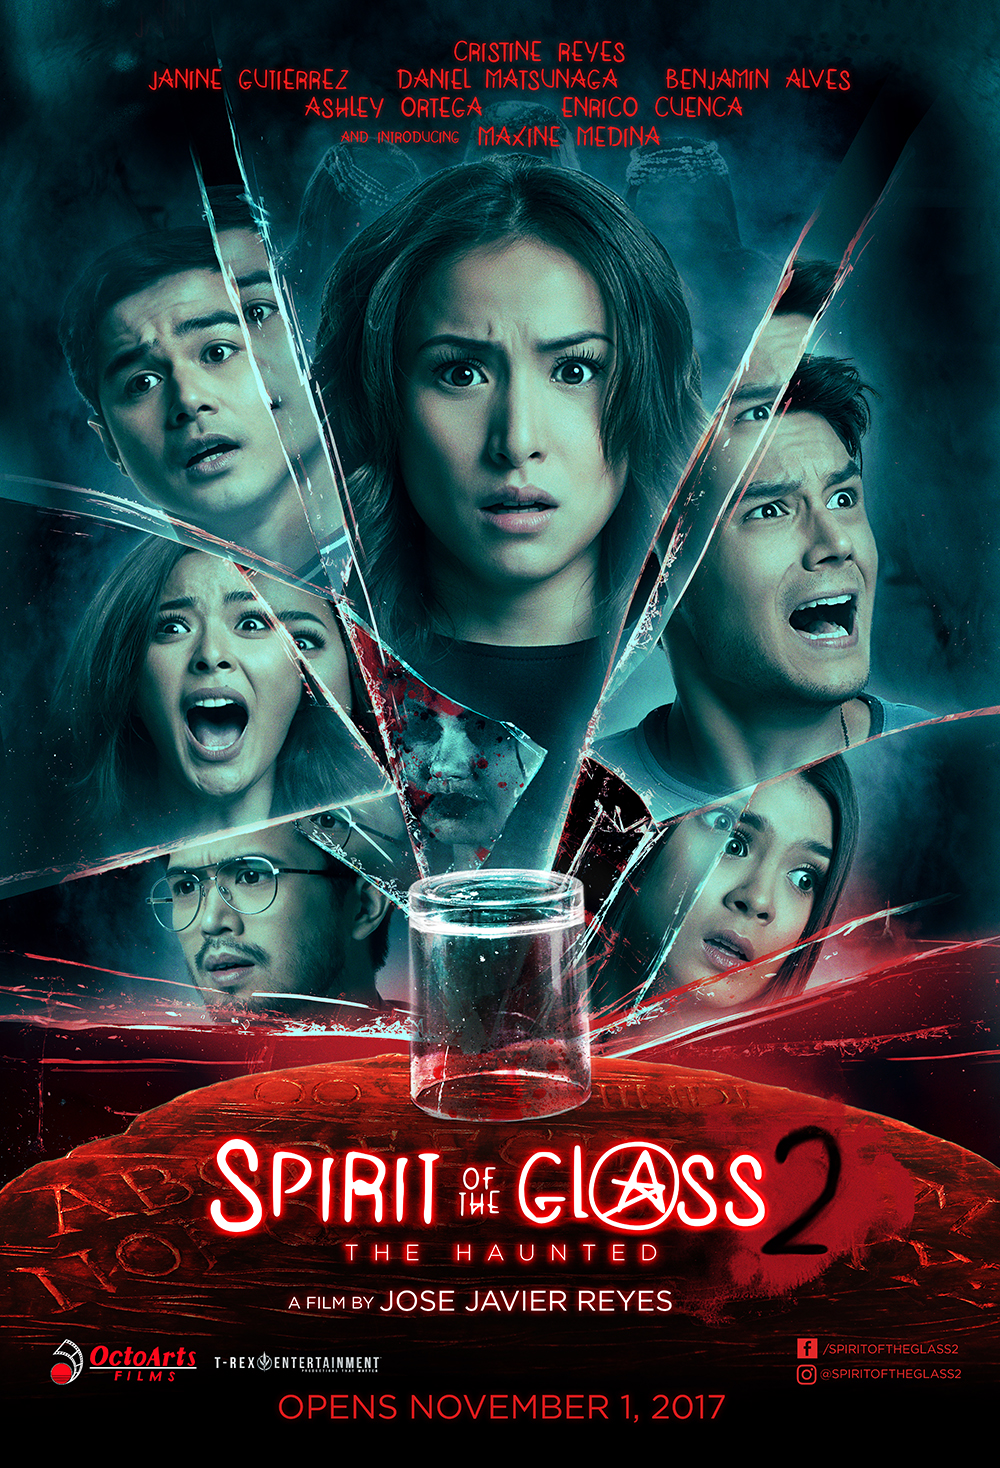 Spirit of the Glass 2: The Haunted